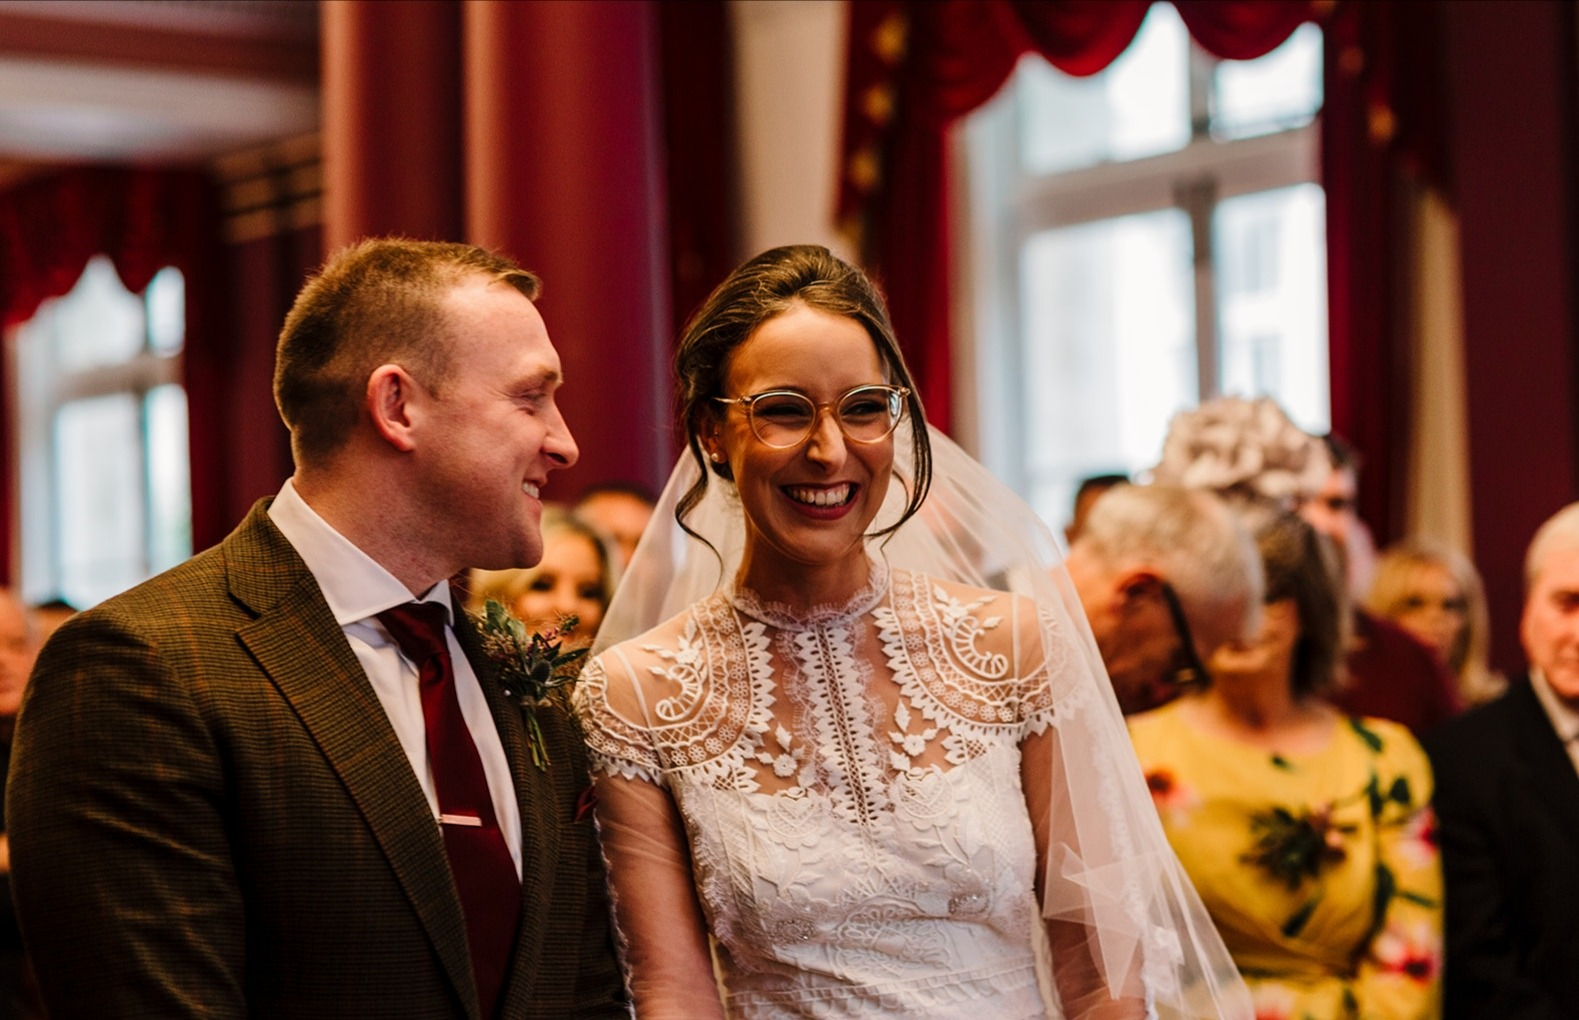 bridal hair and makeup in Liverpool wedding bride and groom